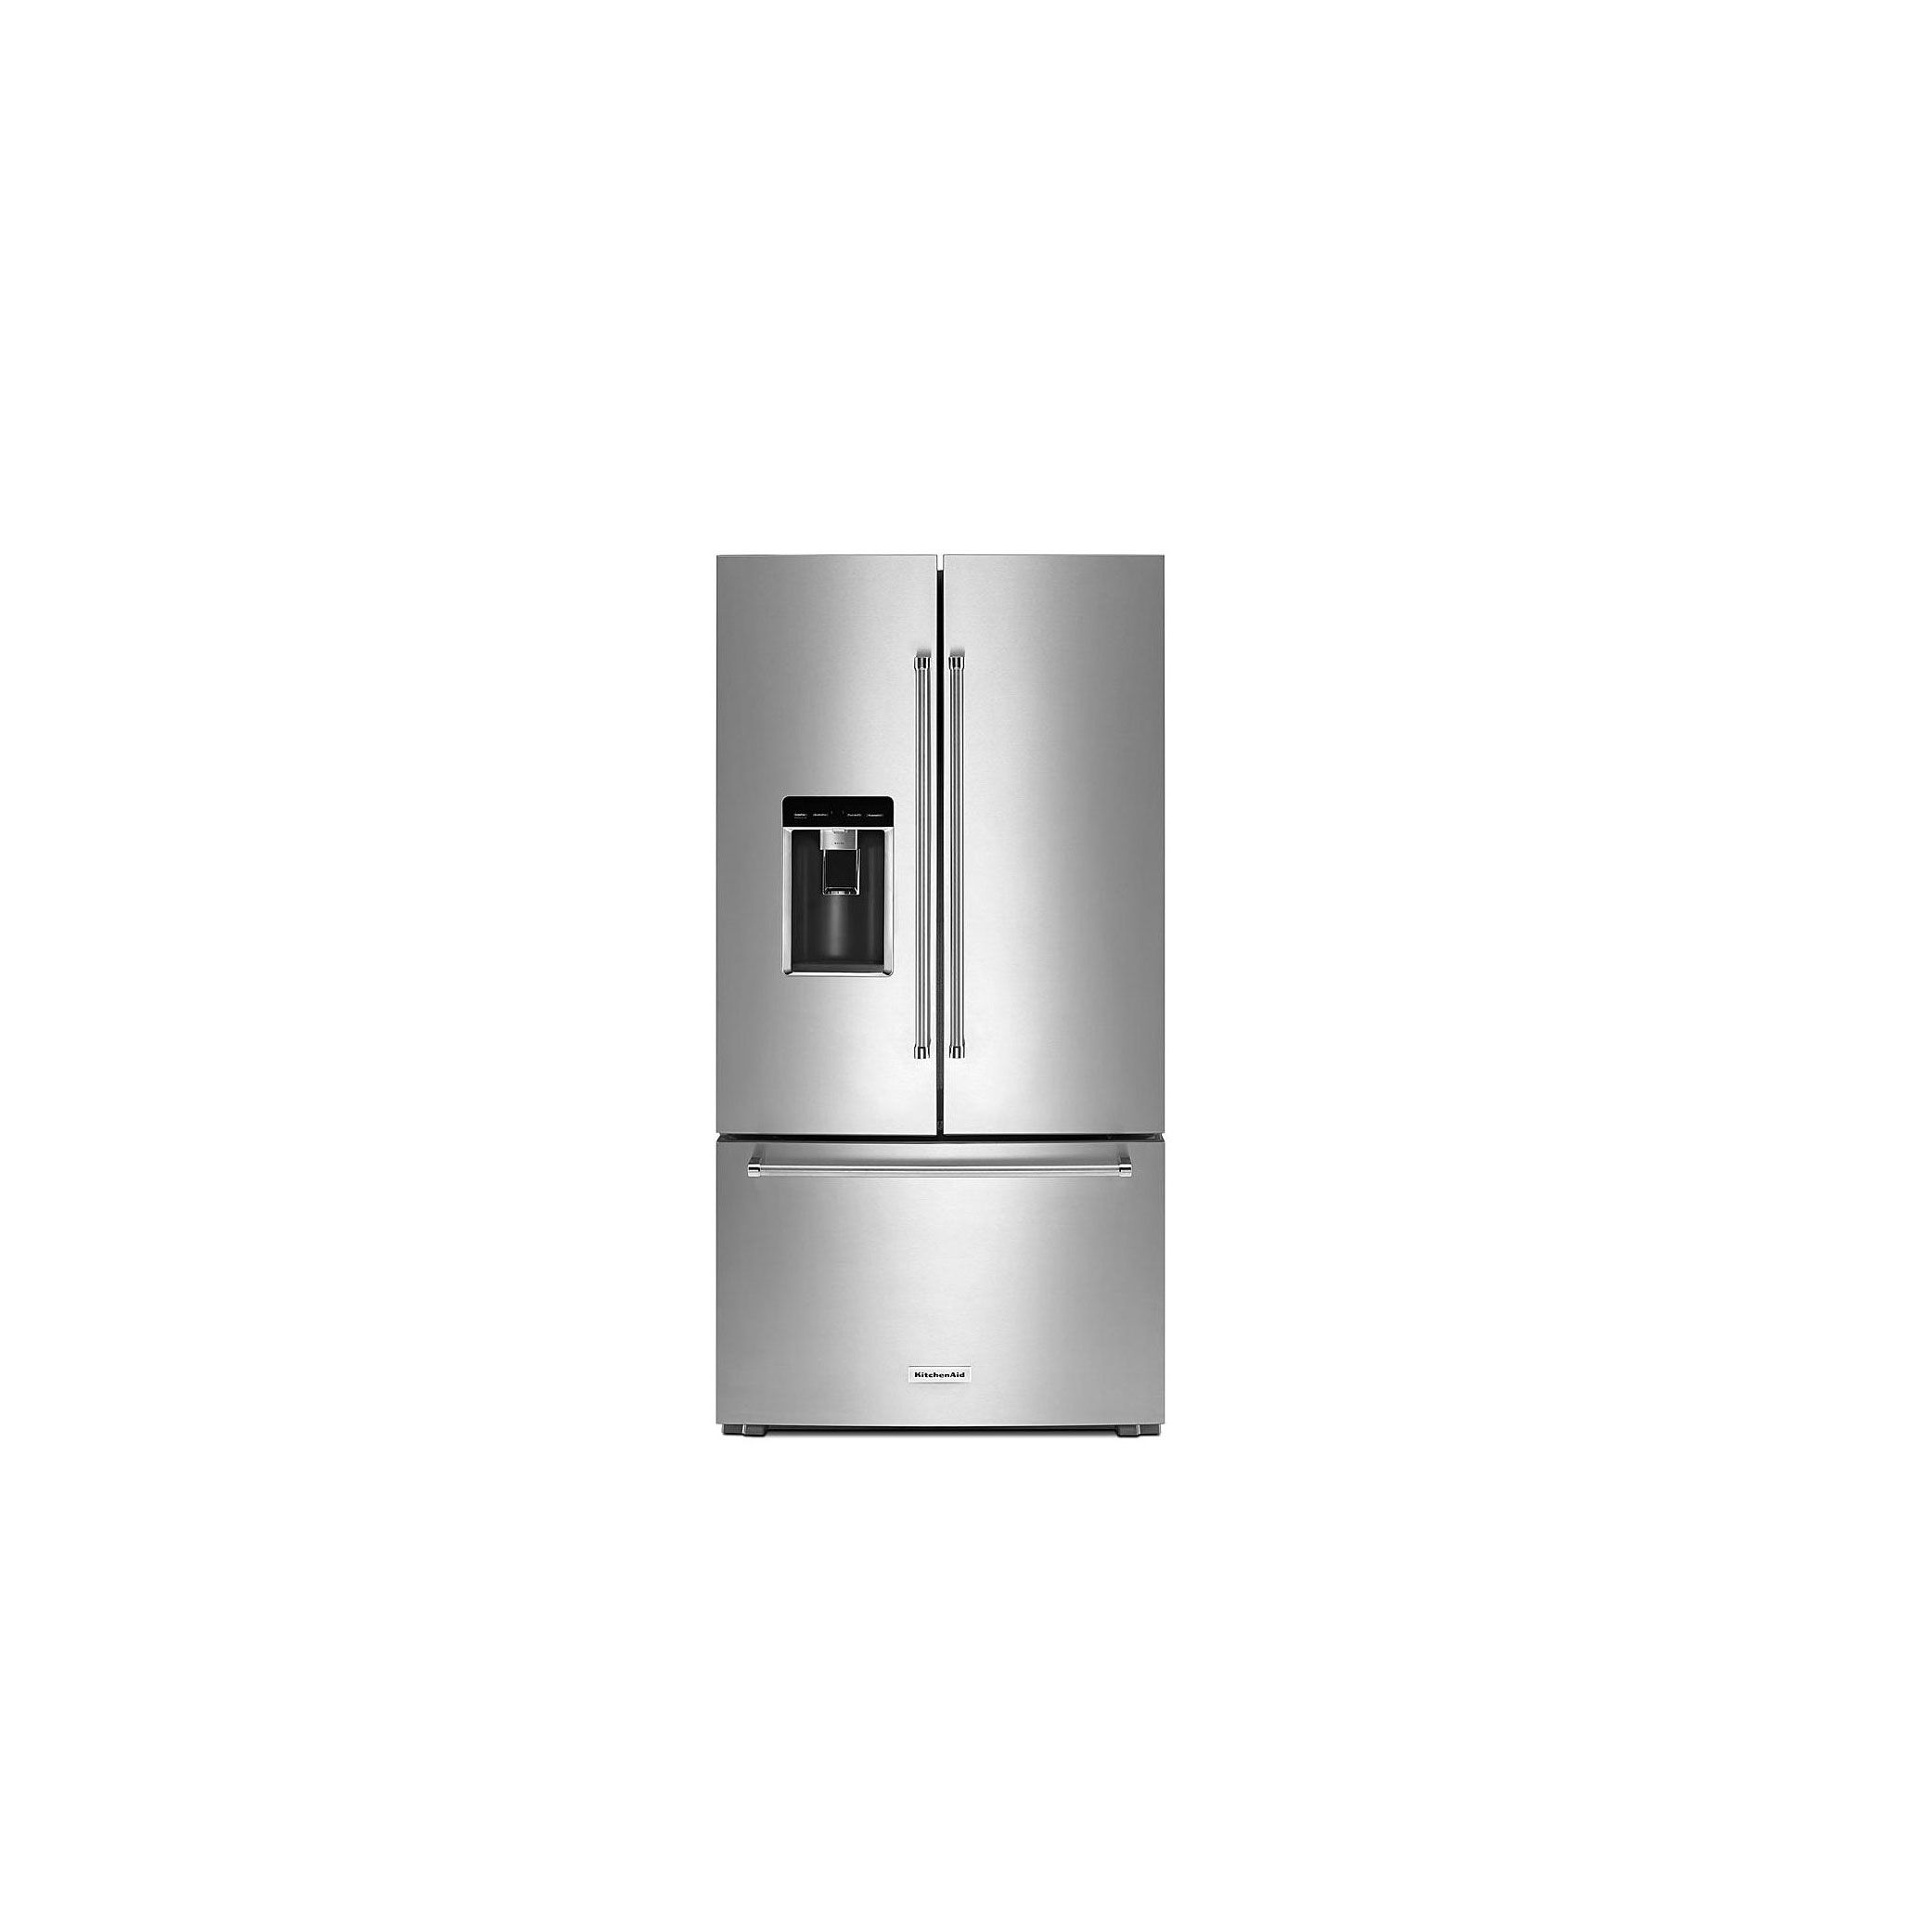 Kitchenaid 23 8 Cu Ft French Door Platinum Interior Refrigerator Krfc704fps Review And Features Pros Cons Of